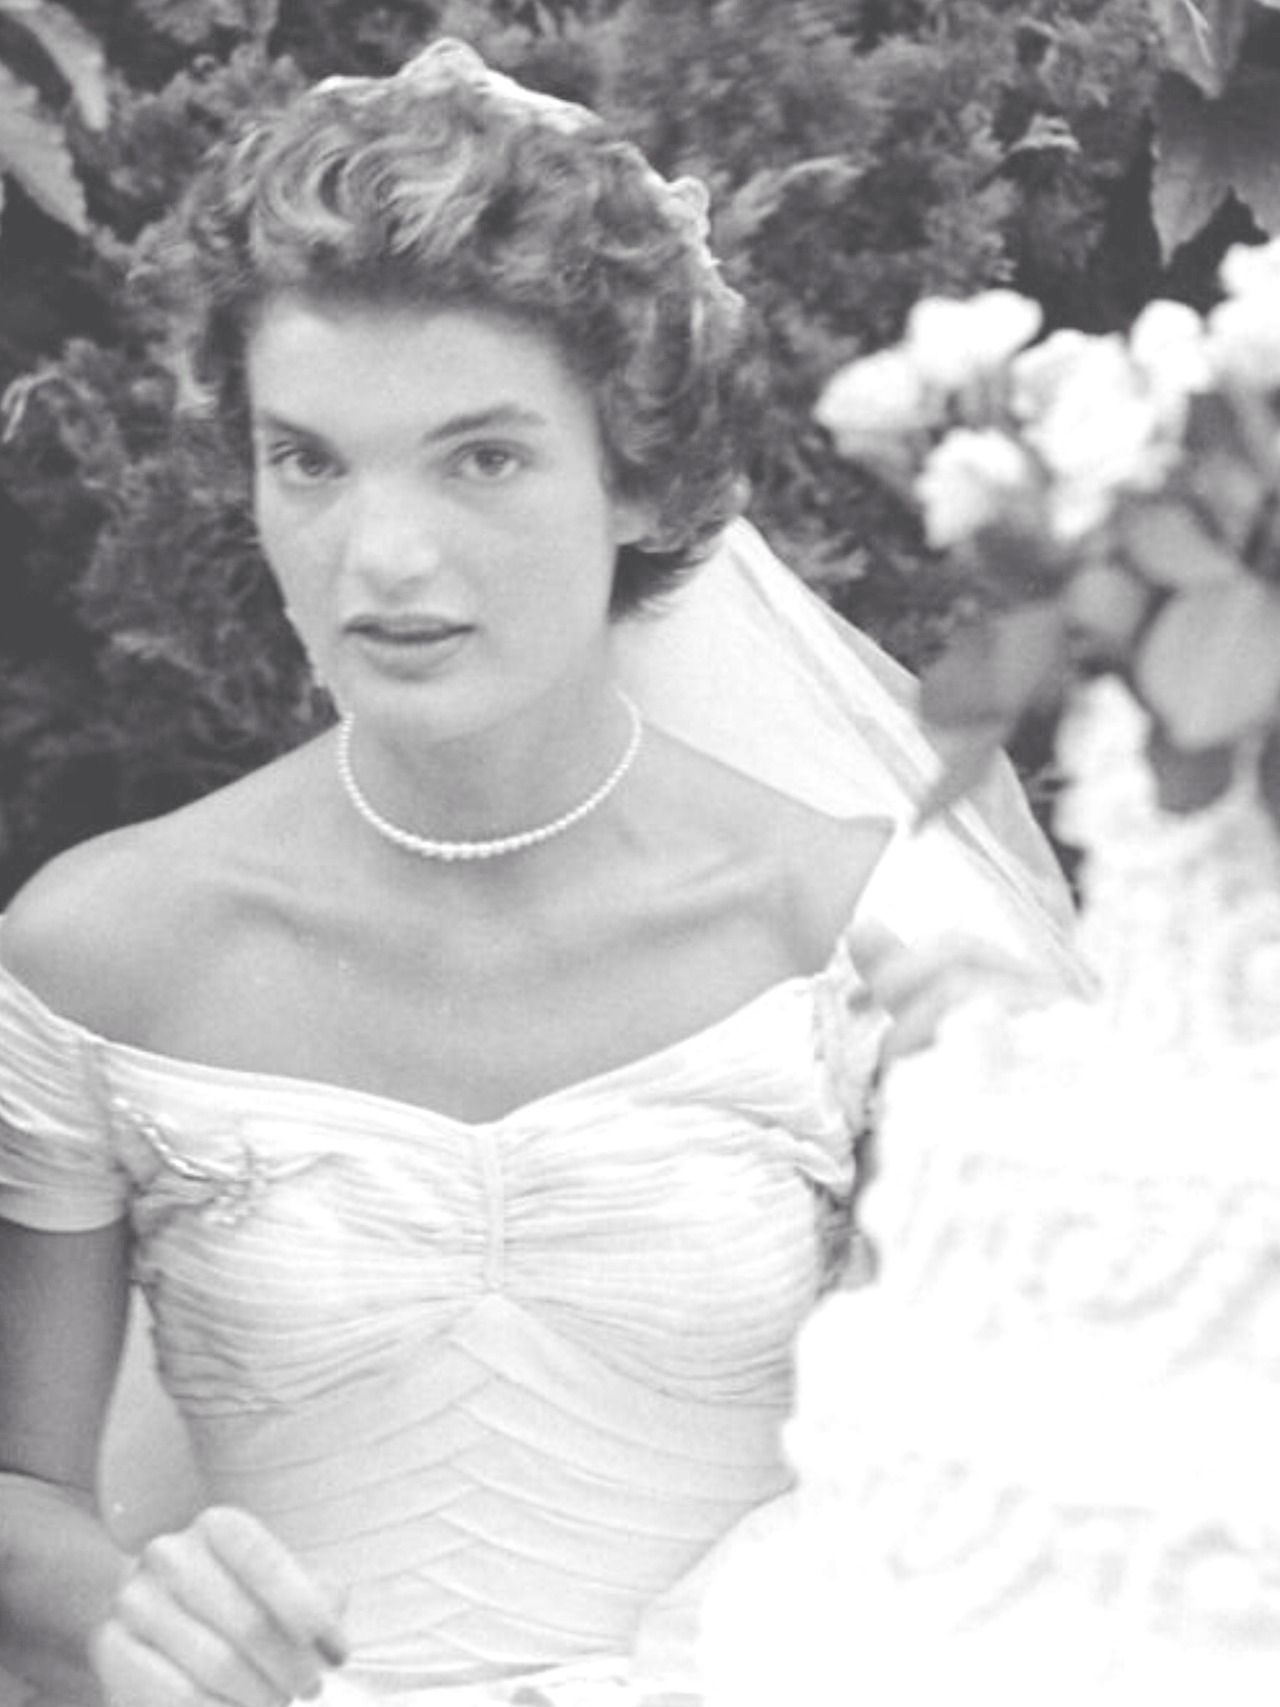 The wedding dress of Jacqueline Bouvier was worn by Jacqueline ...